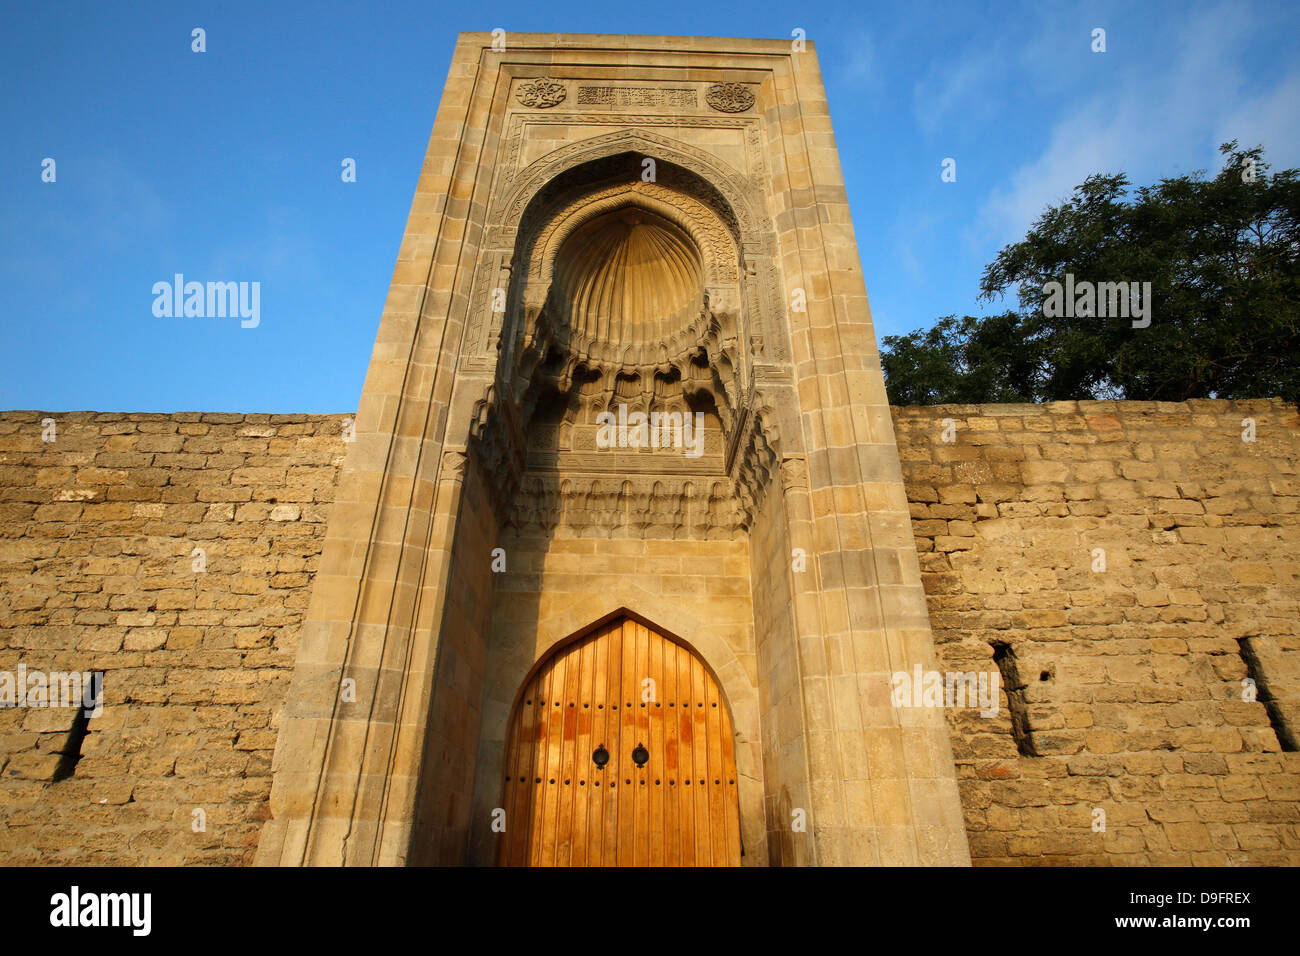 Eastern portal (Murad Gate) of Shirvanshah's palace complex dating from 1585 in Baku Old City, Azerbaijan, Central - Stock Image